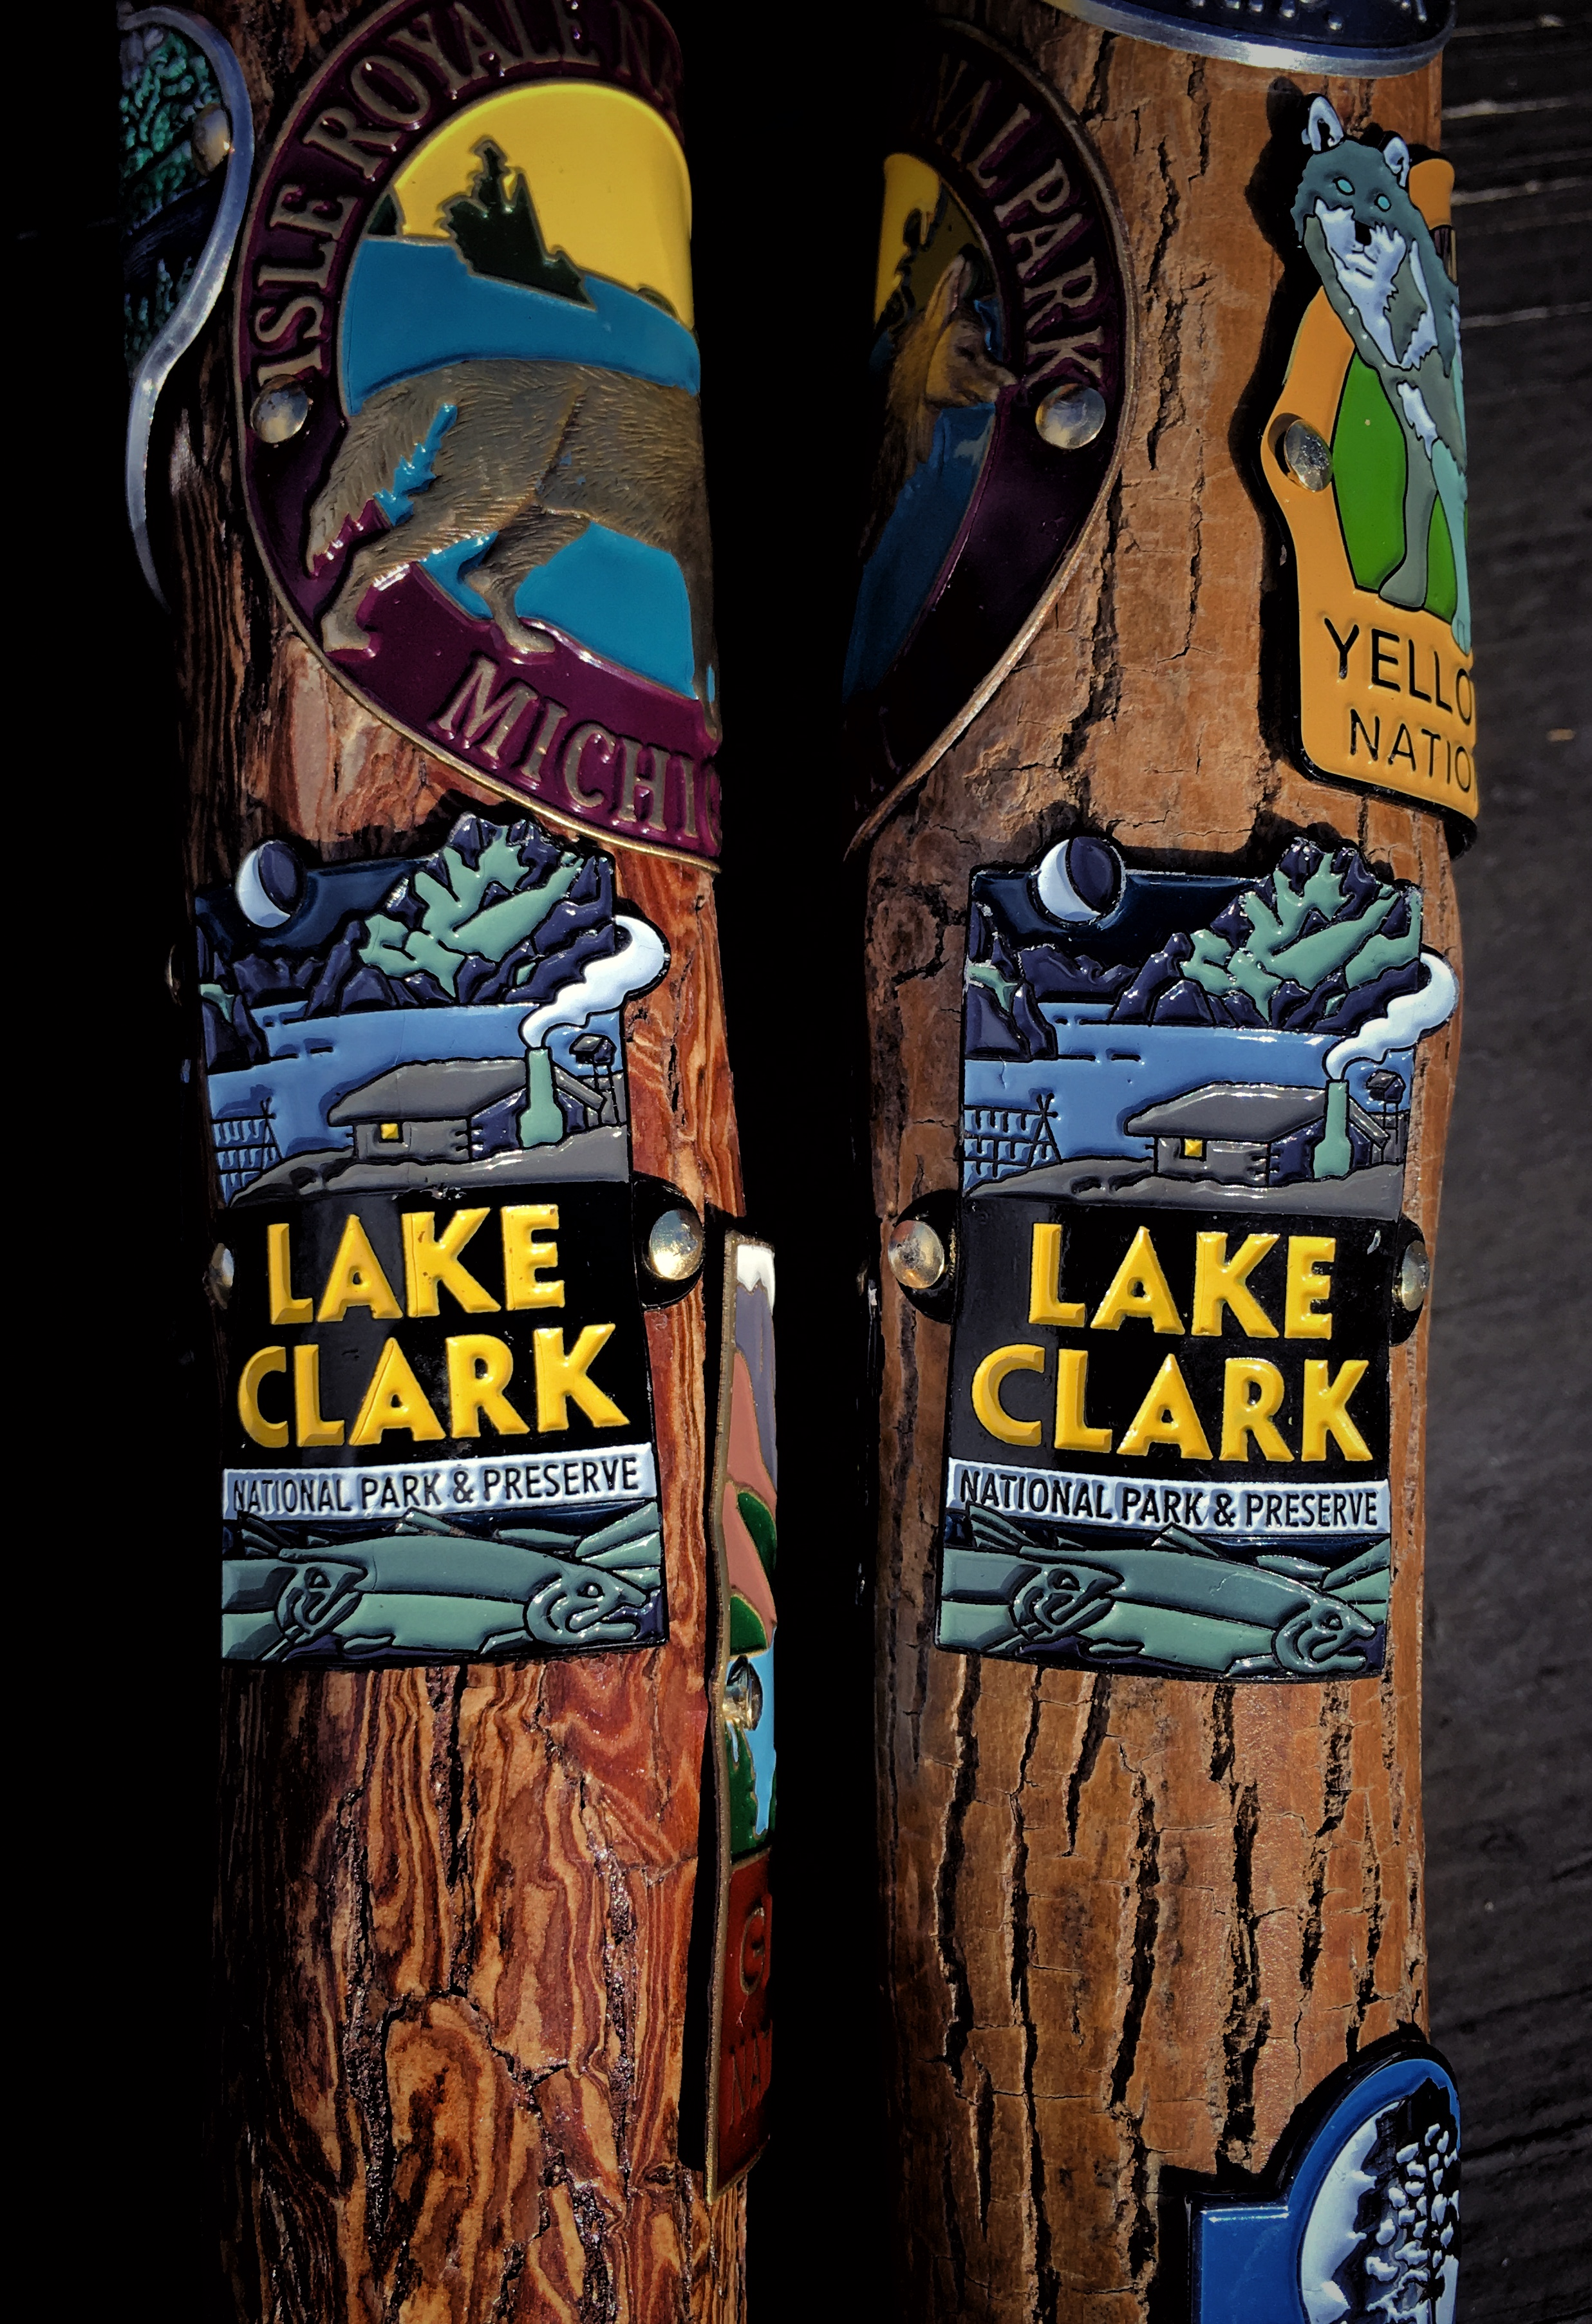 Hiking stick medallions from Lake Clark National Park & Preserve in Alaska.